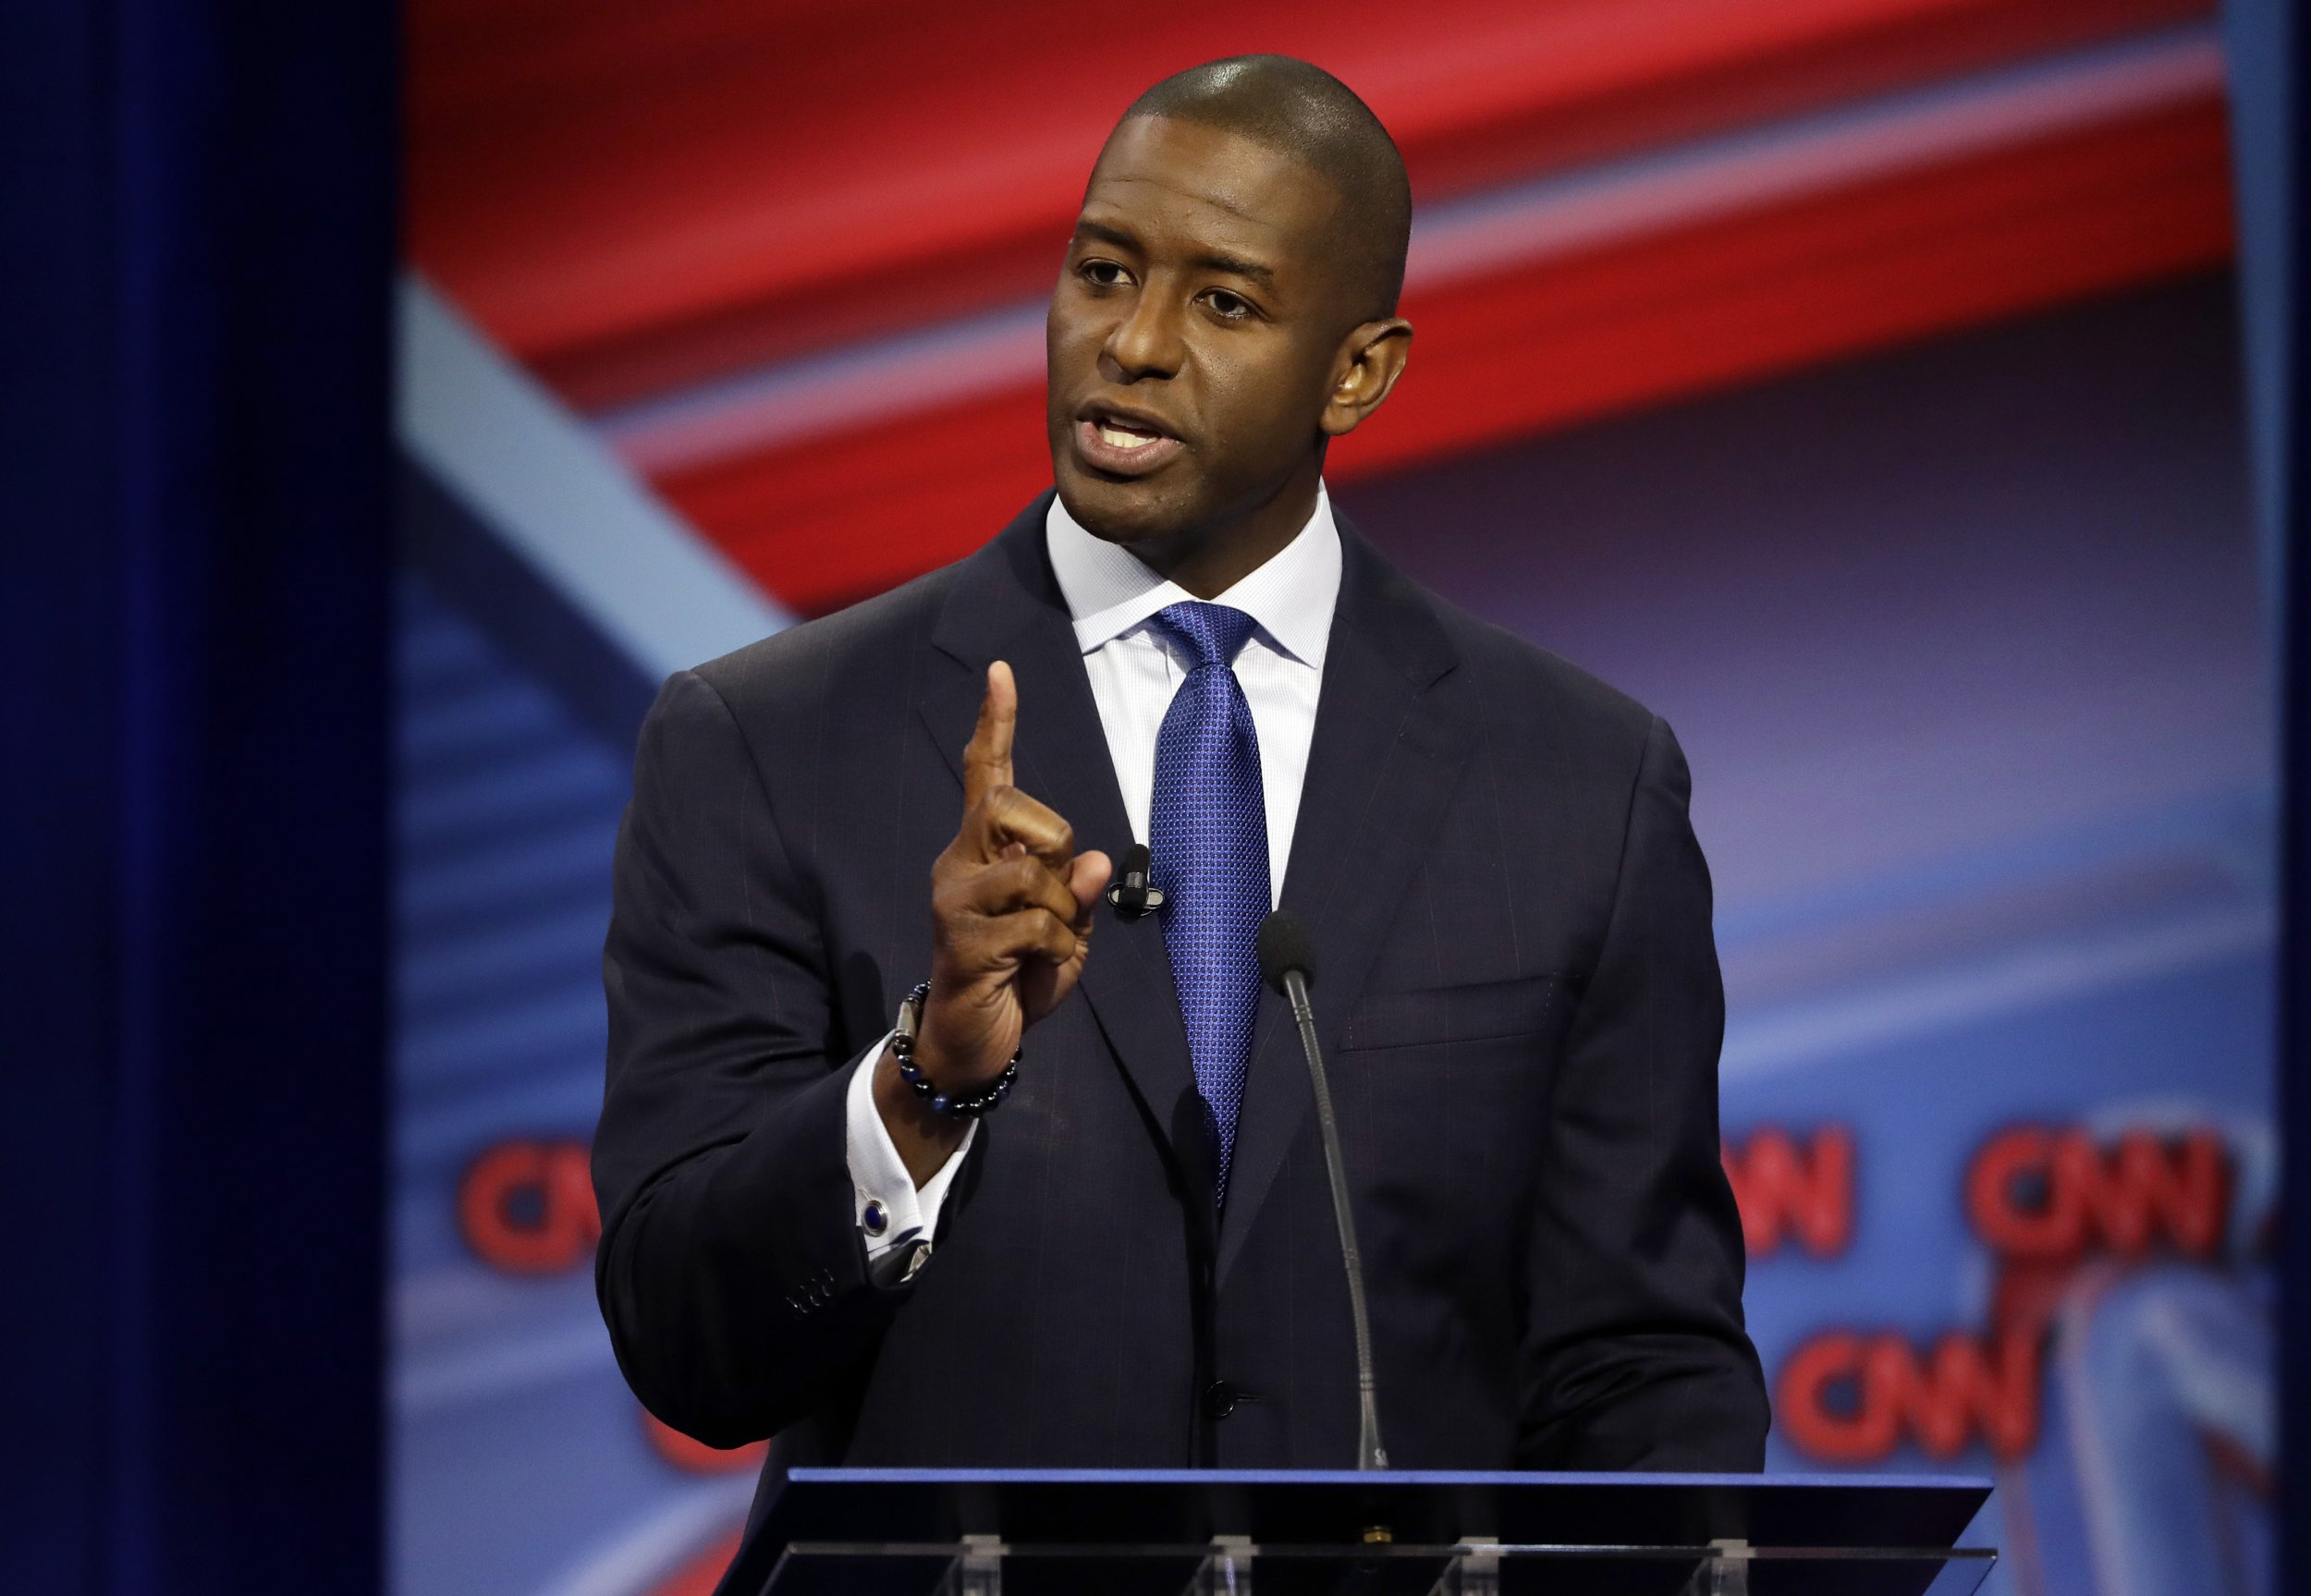 Andrew Gillum Responds to Cesar Sayoc Targeting Him in Twitter Posts: 'Dangerous Rhetoric' Is 'Poisoning Our Society'